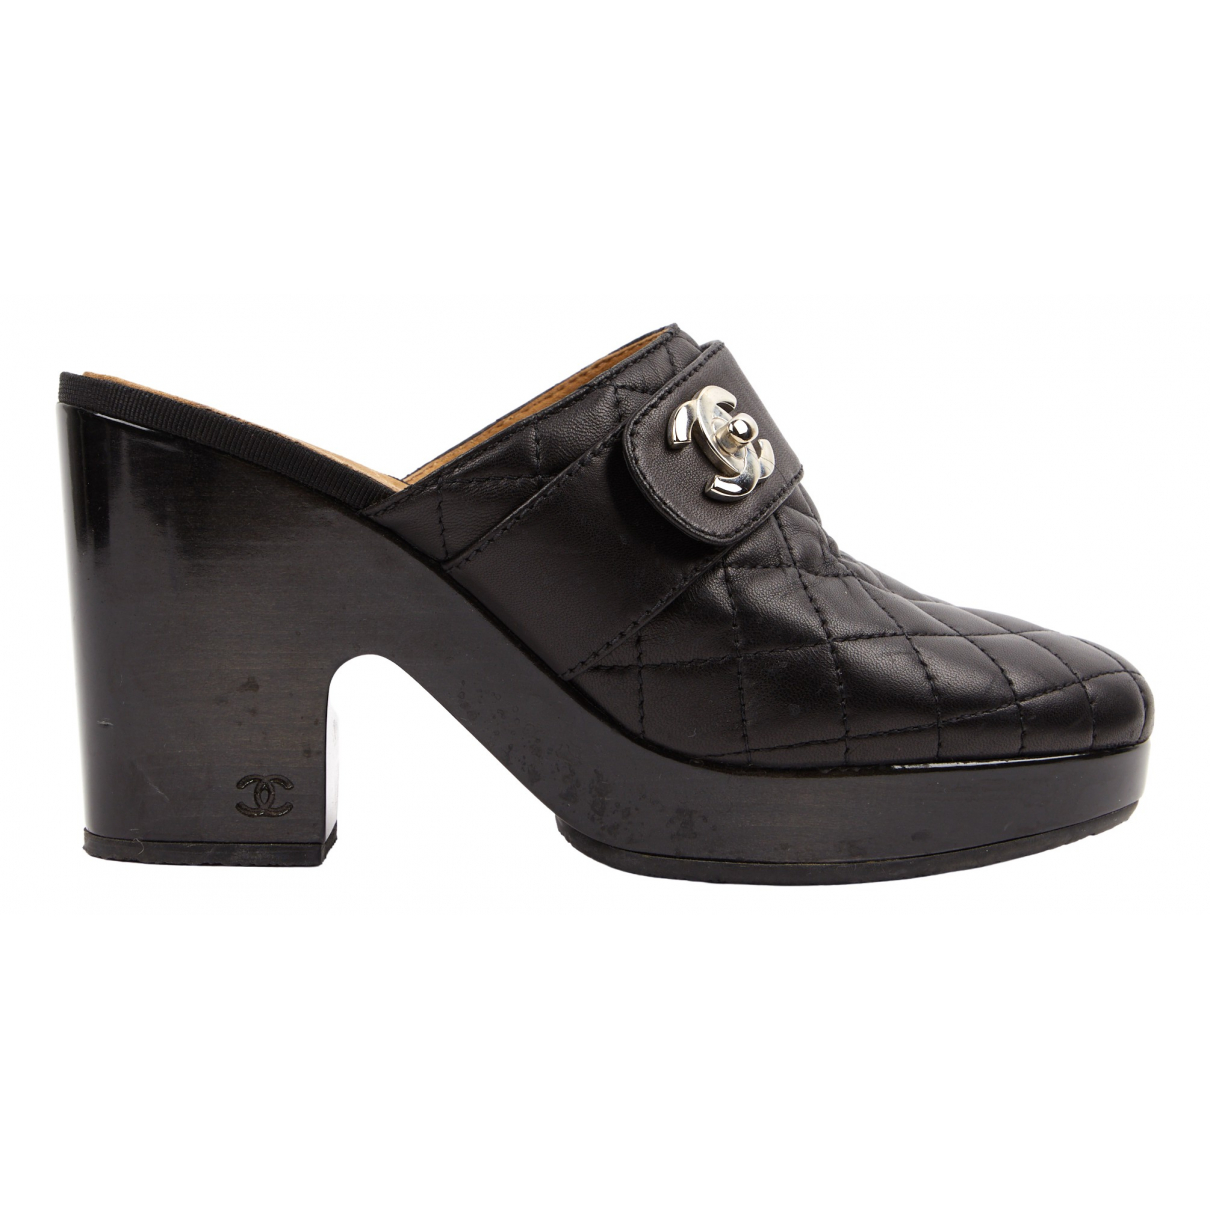 Chanel \N Black Leather Mules & Clogs for Women 40.5 EU